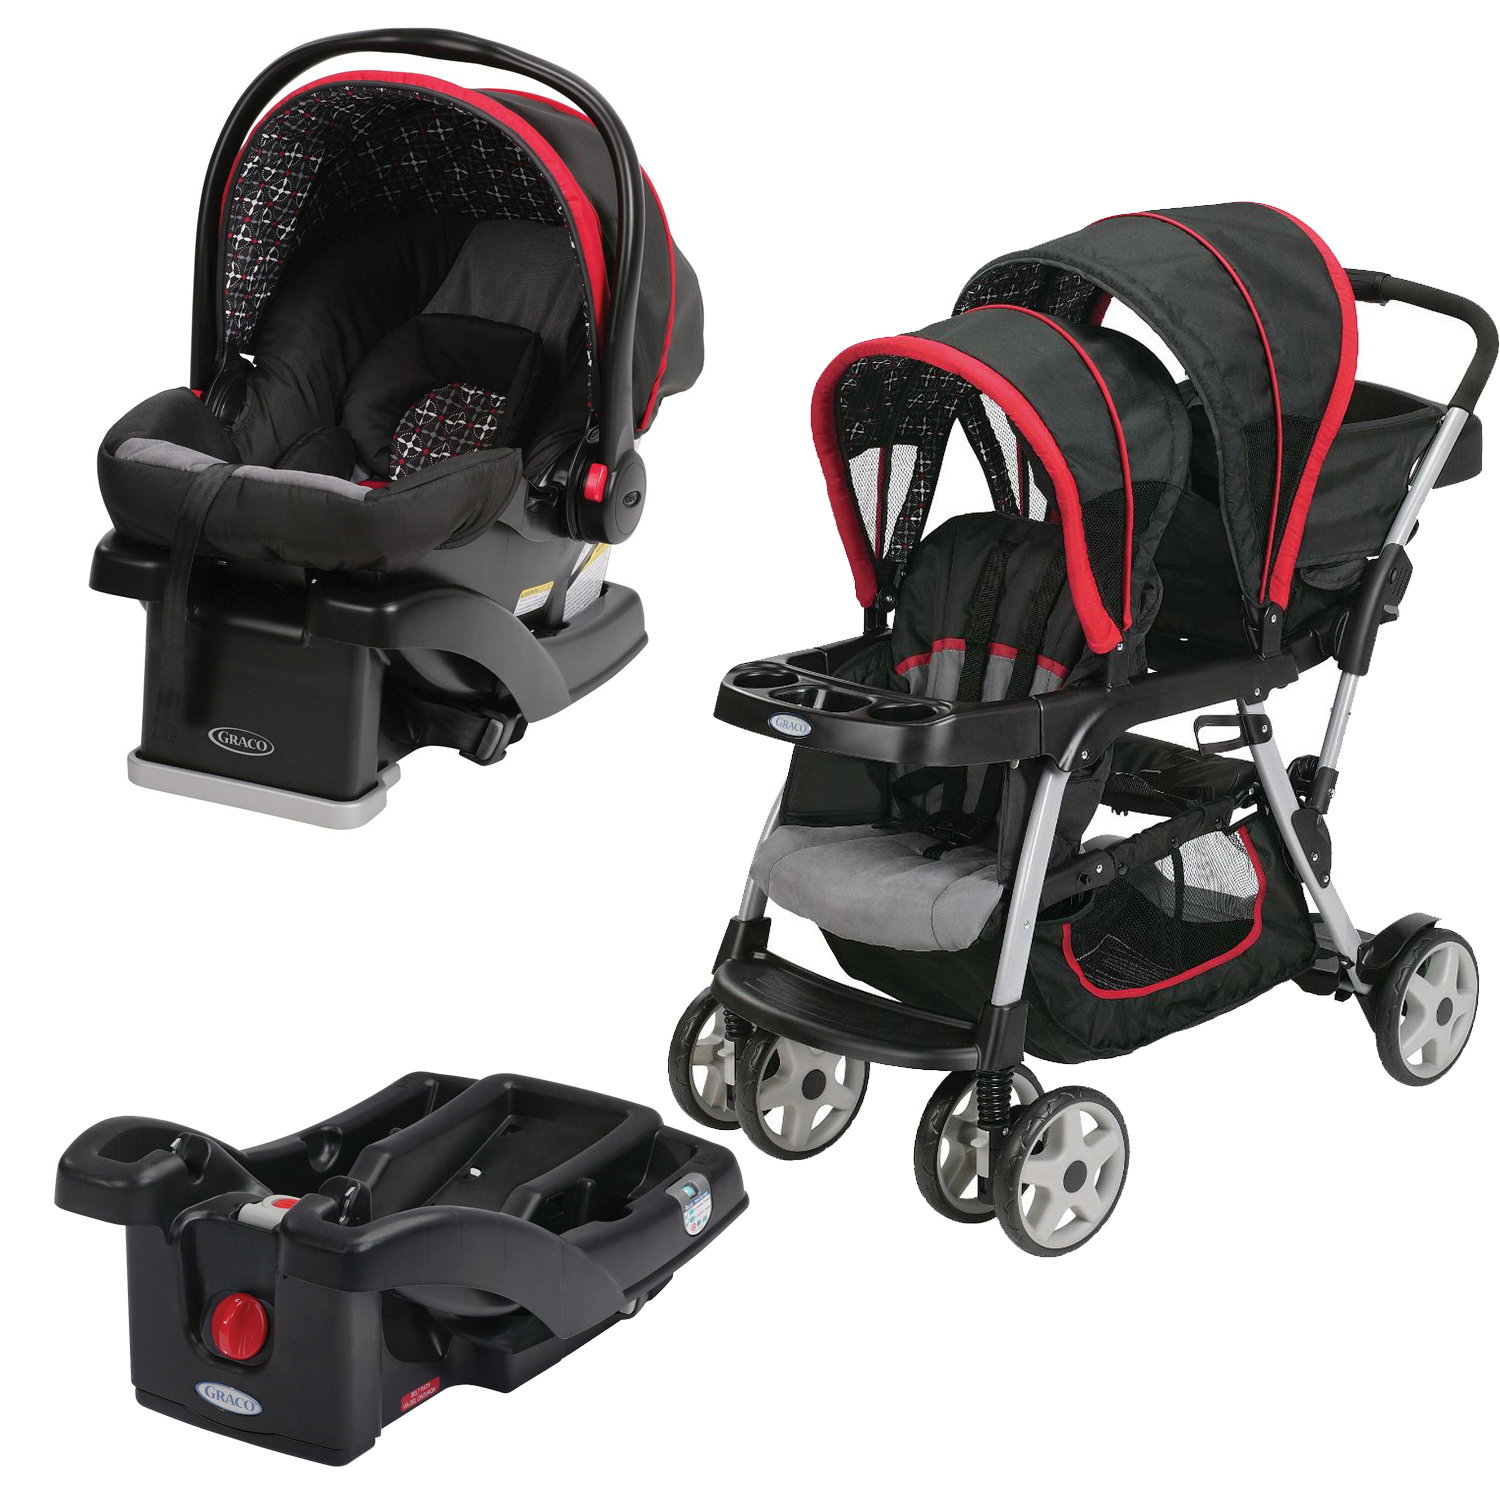 graco ready2grow double stroller with snugride car seat extra base marco ebay. Black Bedroom Furniture Sets. Home Design Ideas